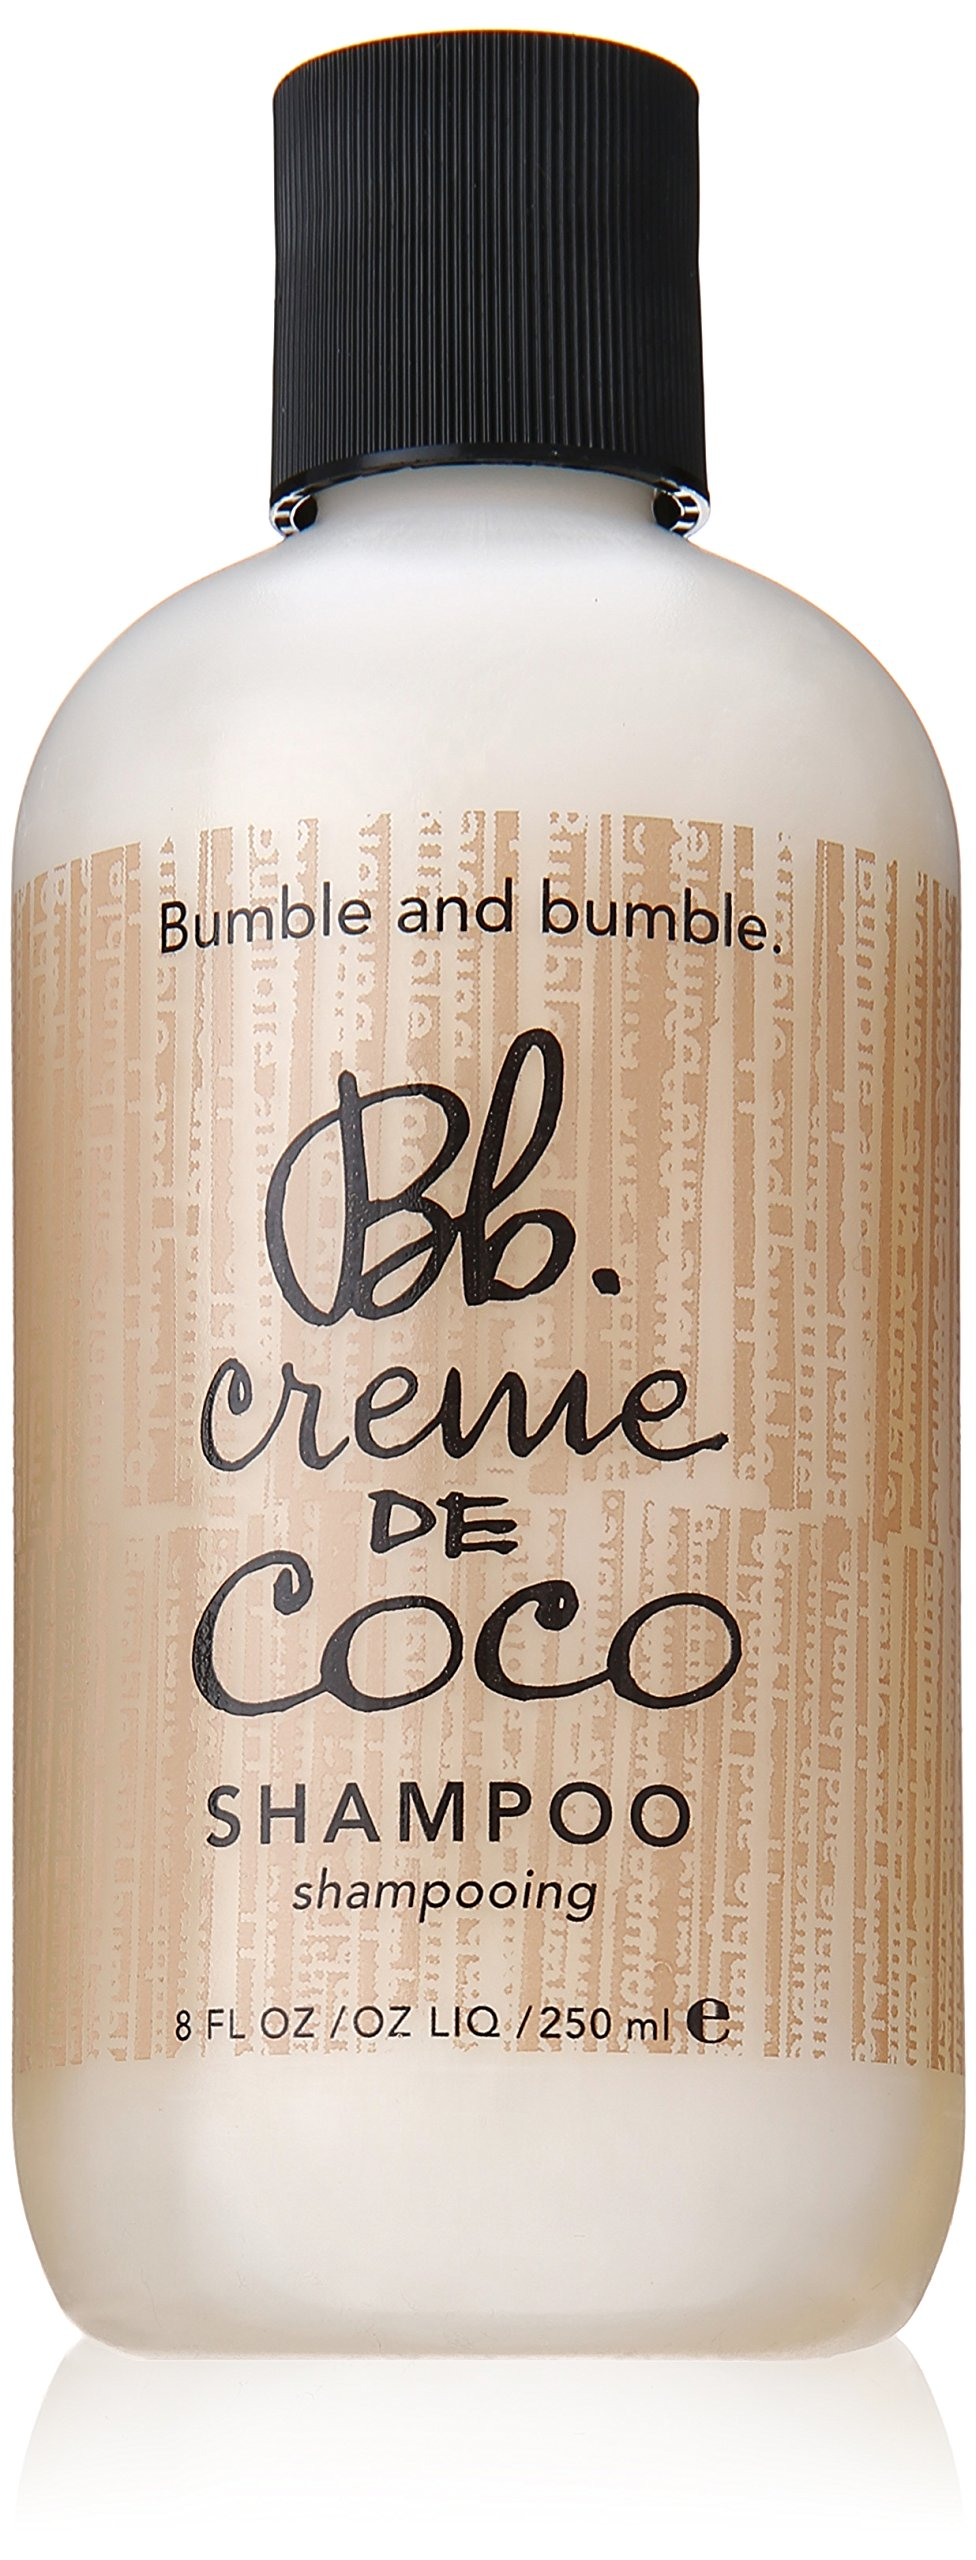 Bumble and Bumble Crème De Coco Shampoo, 8 Ounce by Bumble and Bumble